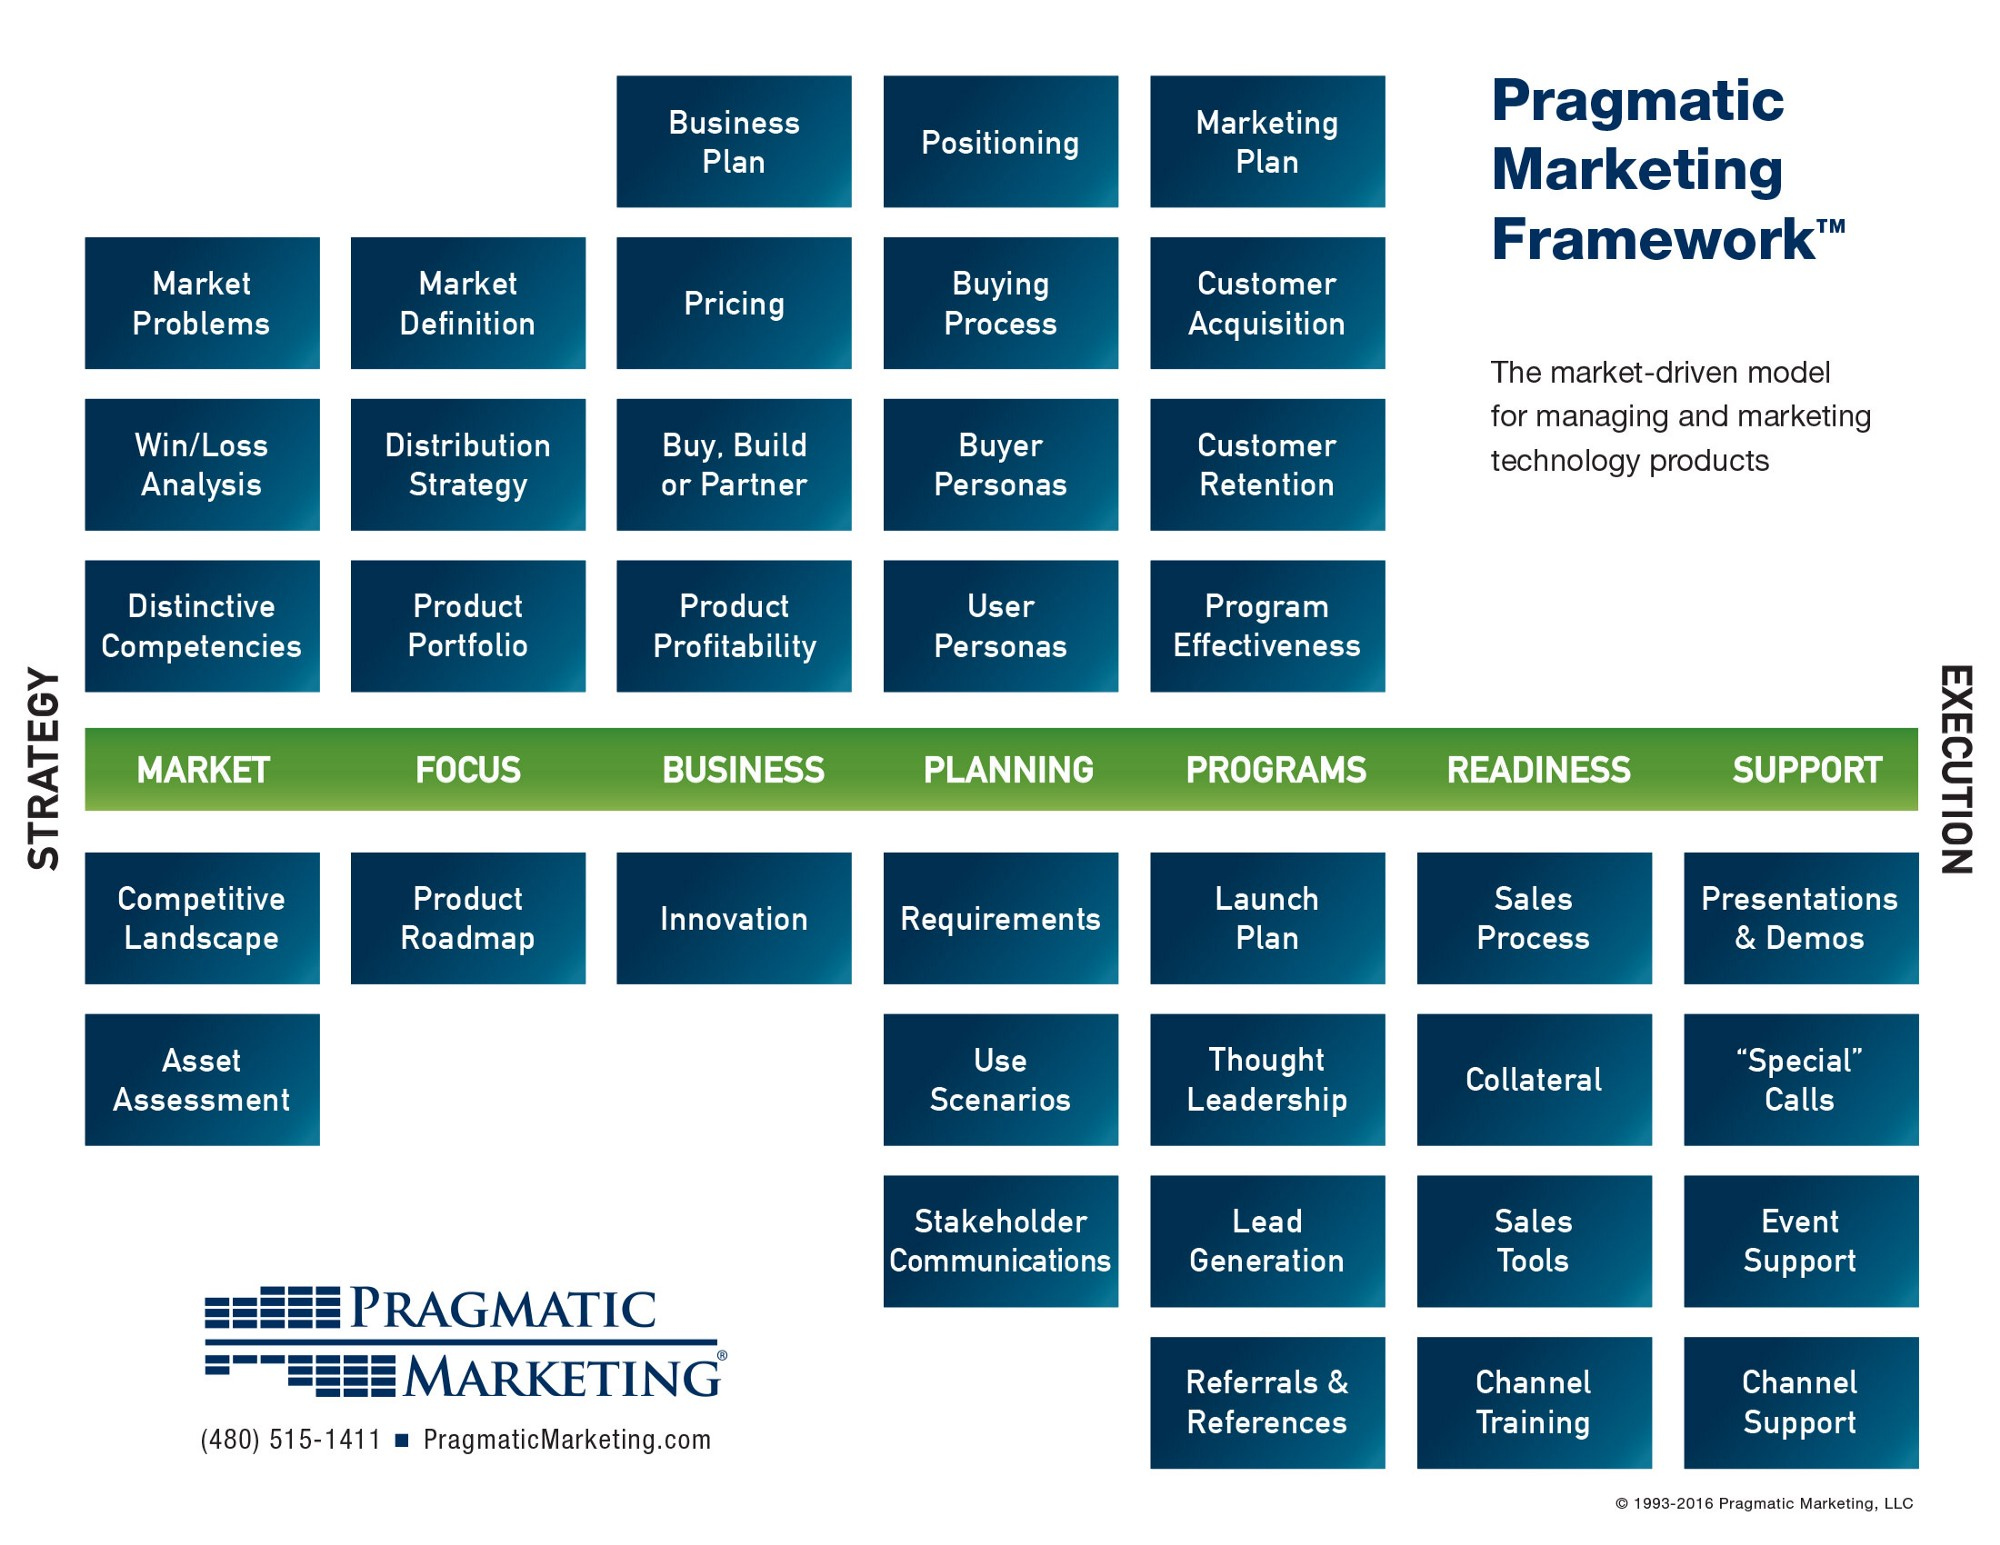 The Pragmatic Marketing Framework I Want To Be A Product